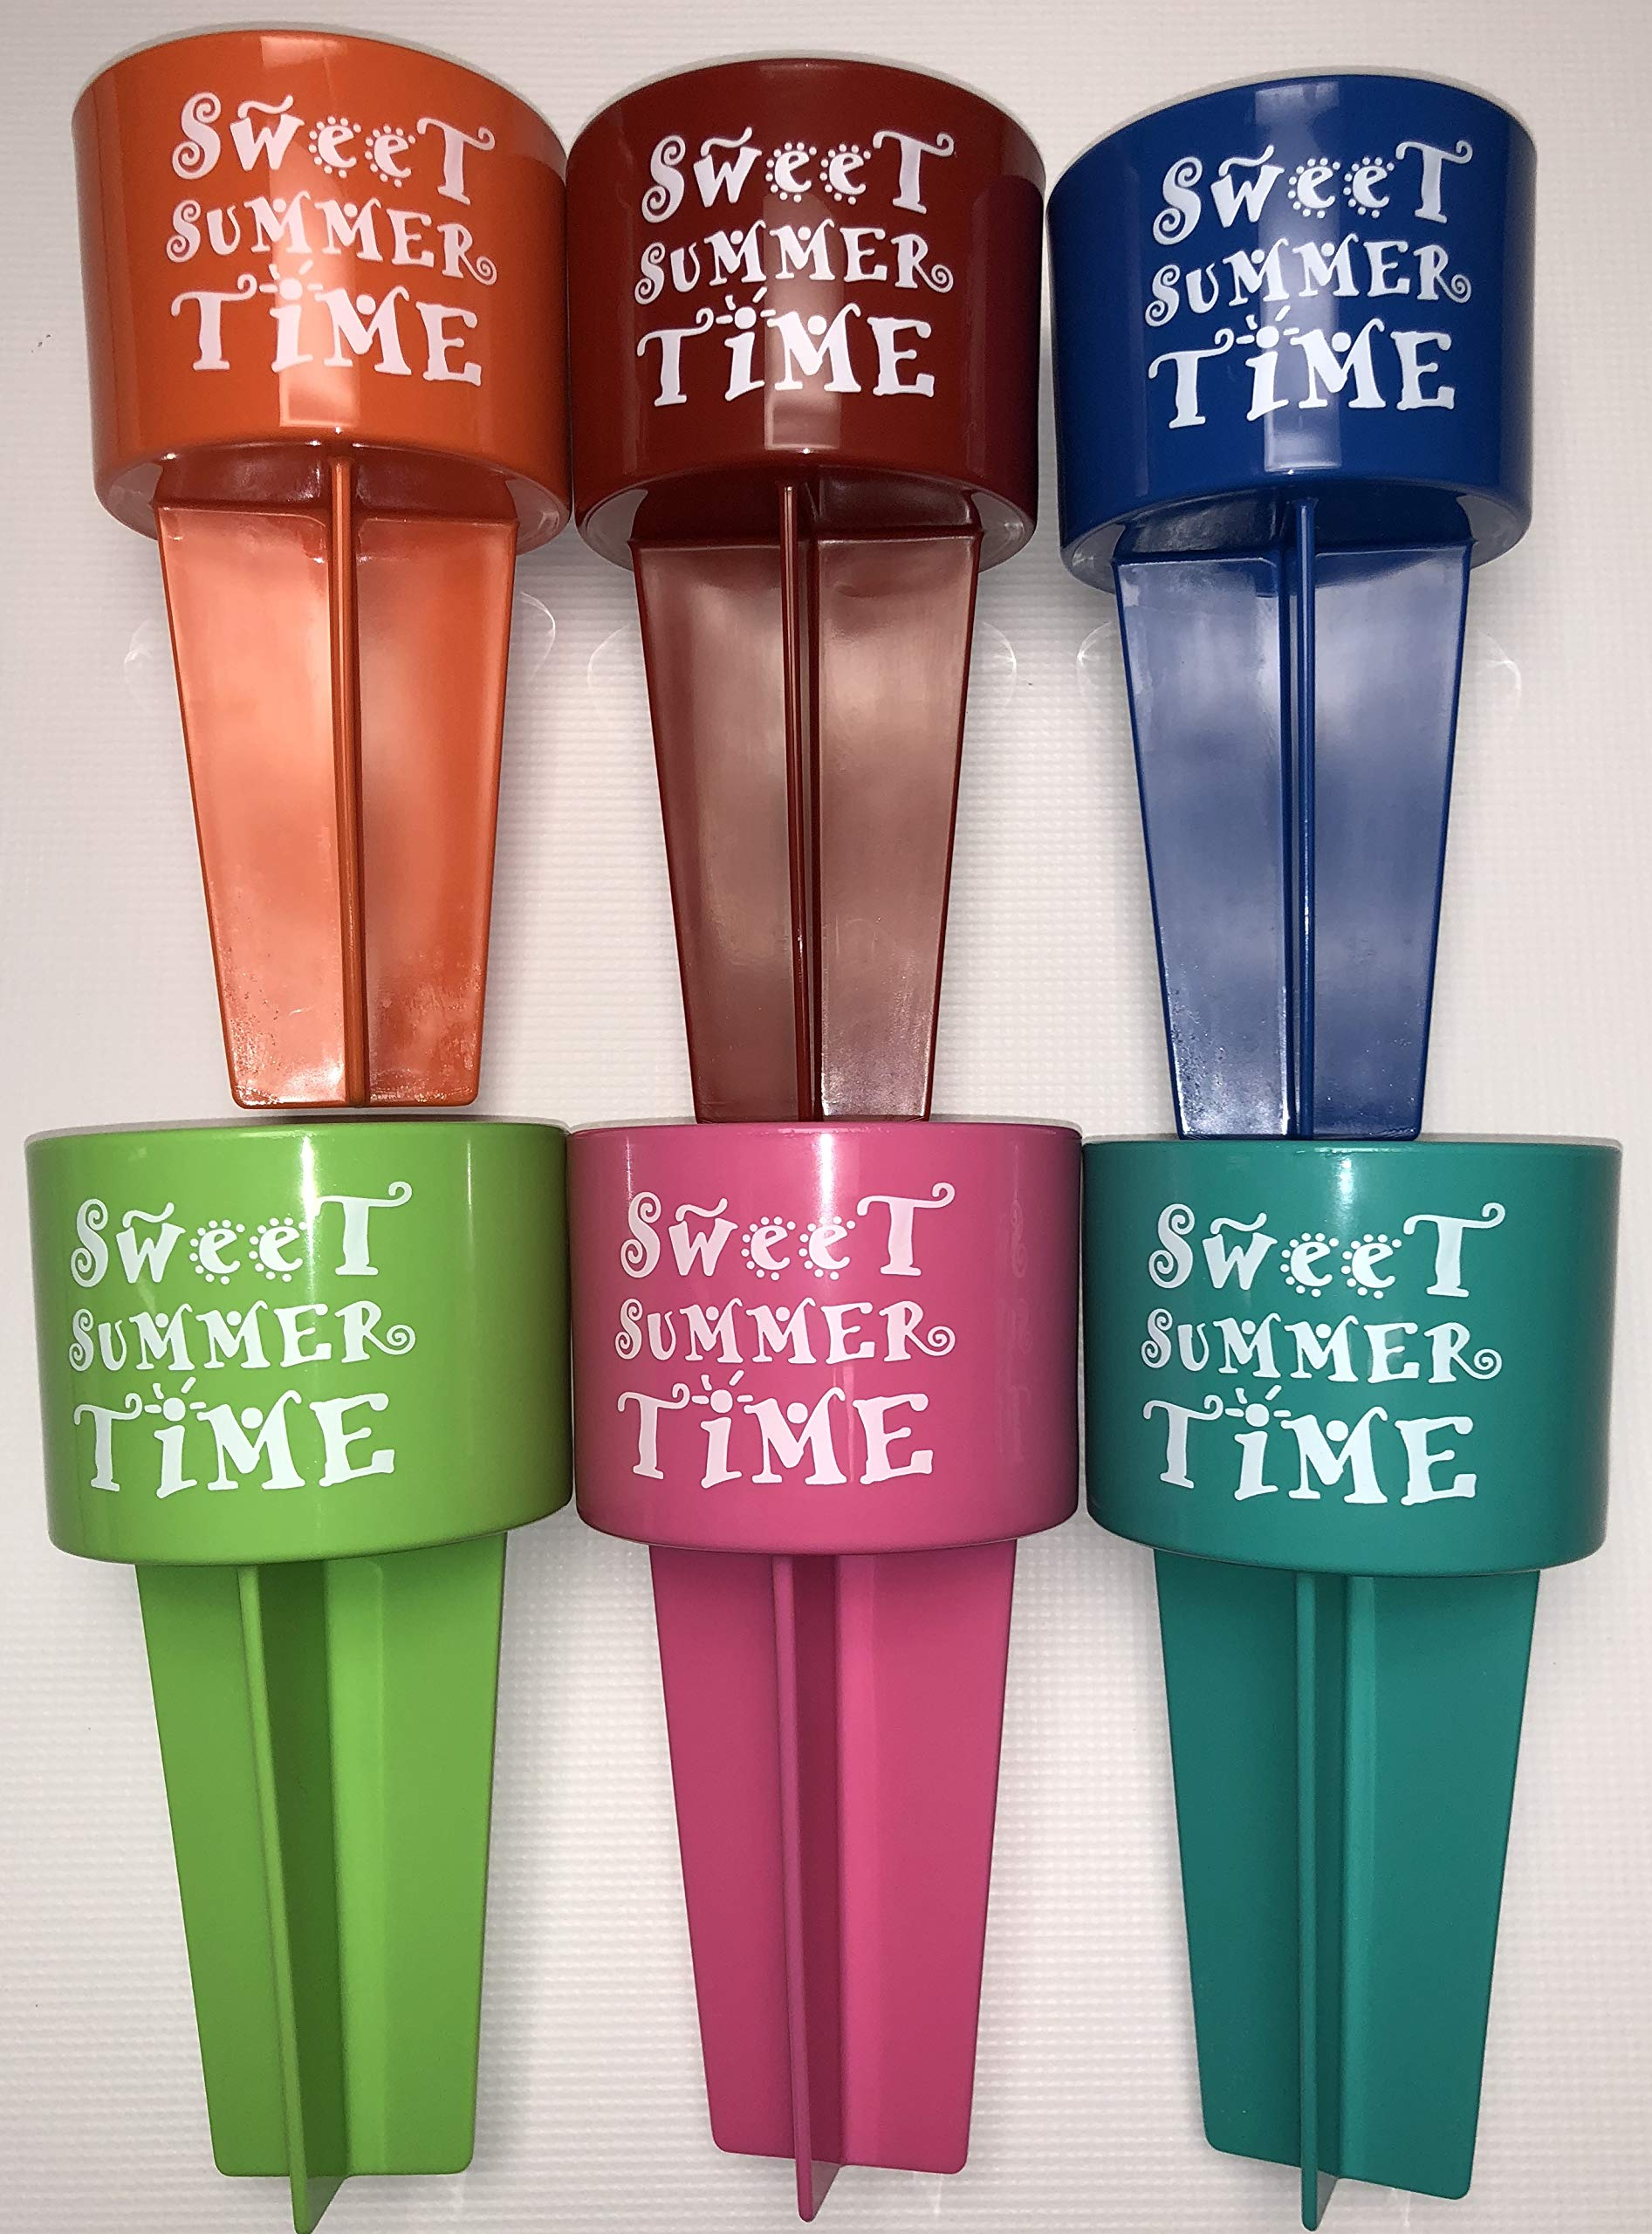 SPIKER SST6 sweetsummertime beach cup holder, One, 6 assorted colors